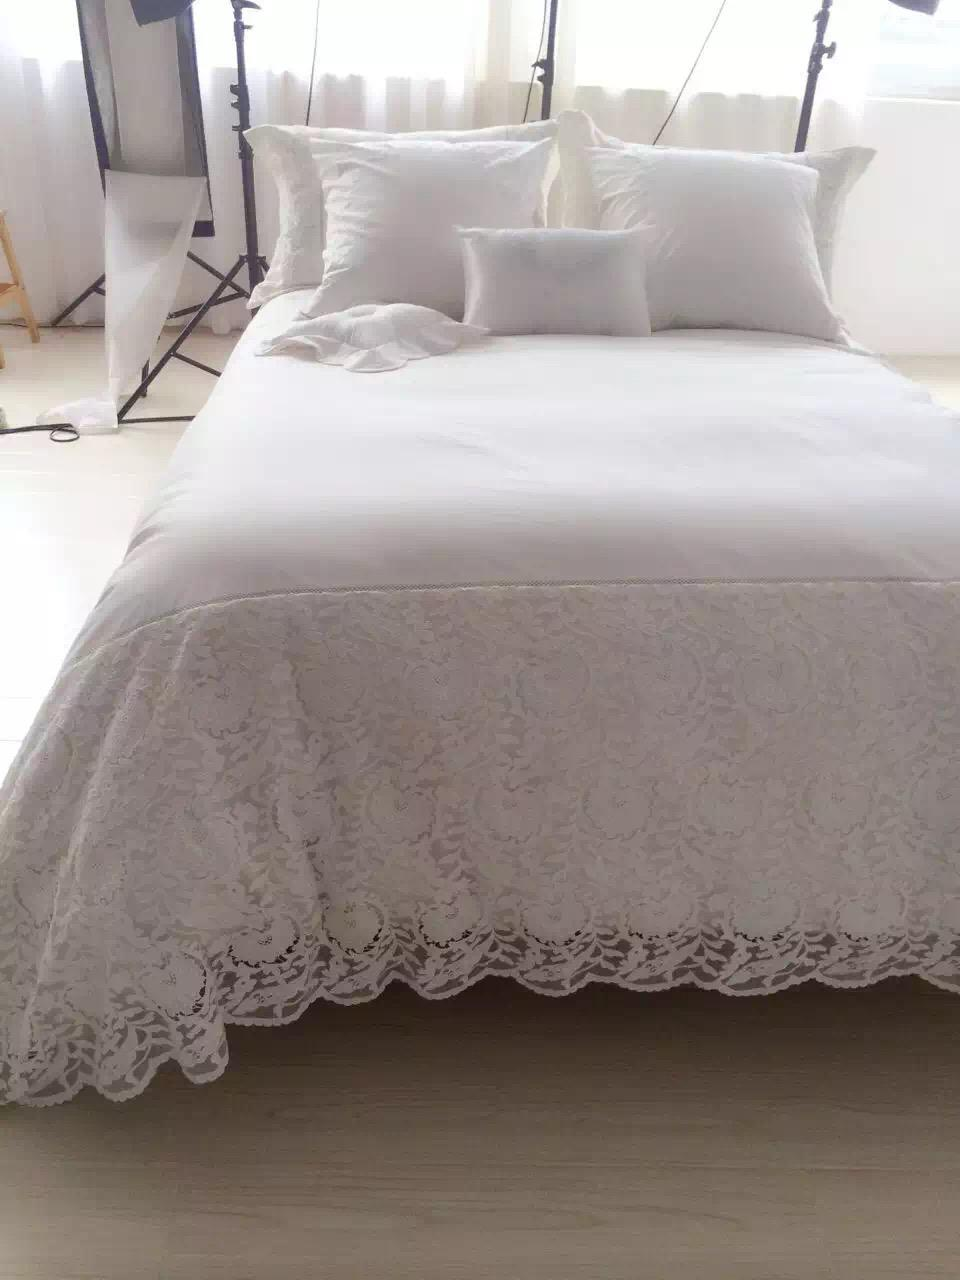 Wedding bed sheet set - Luxury Wedding Kit 100 Cotton White Color Bedding Sets With Lace Duvet Covers 4pcs Lace